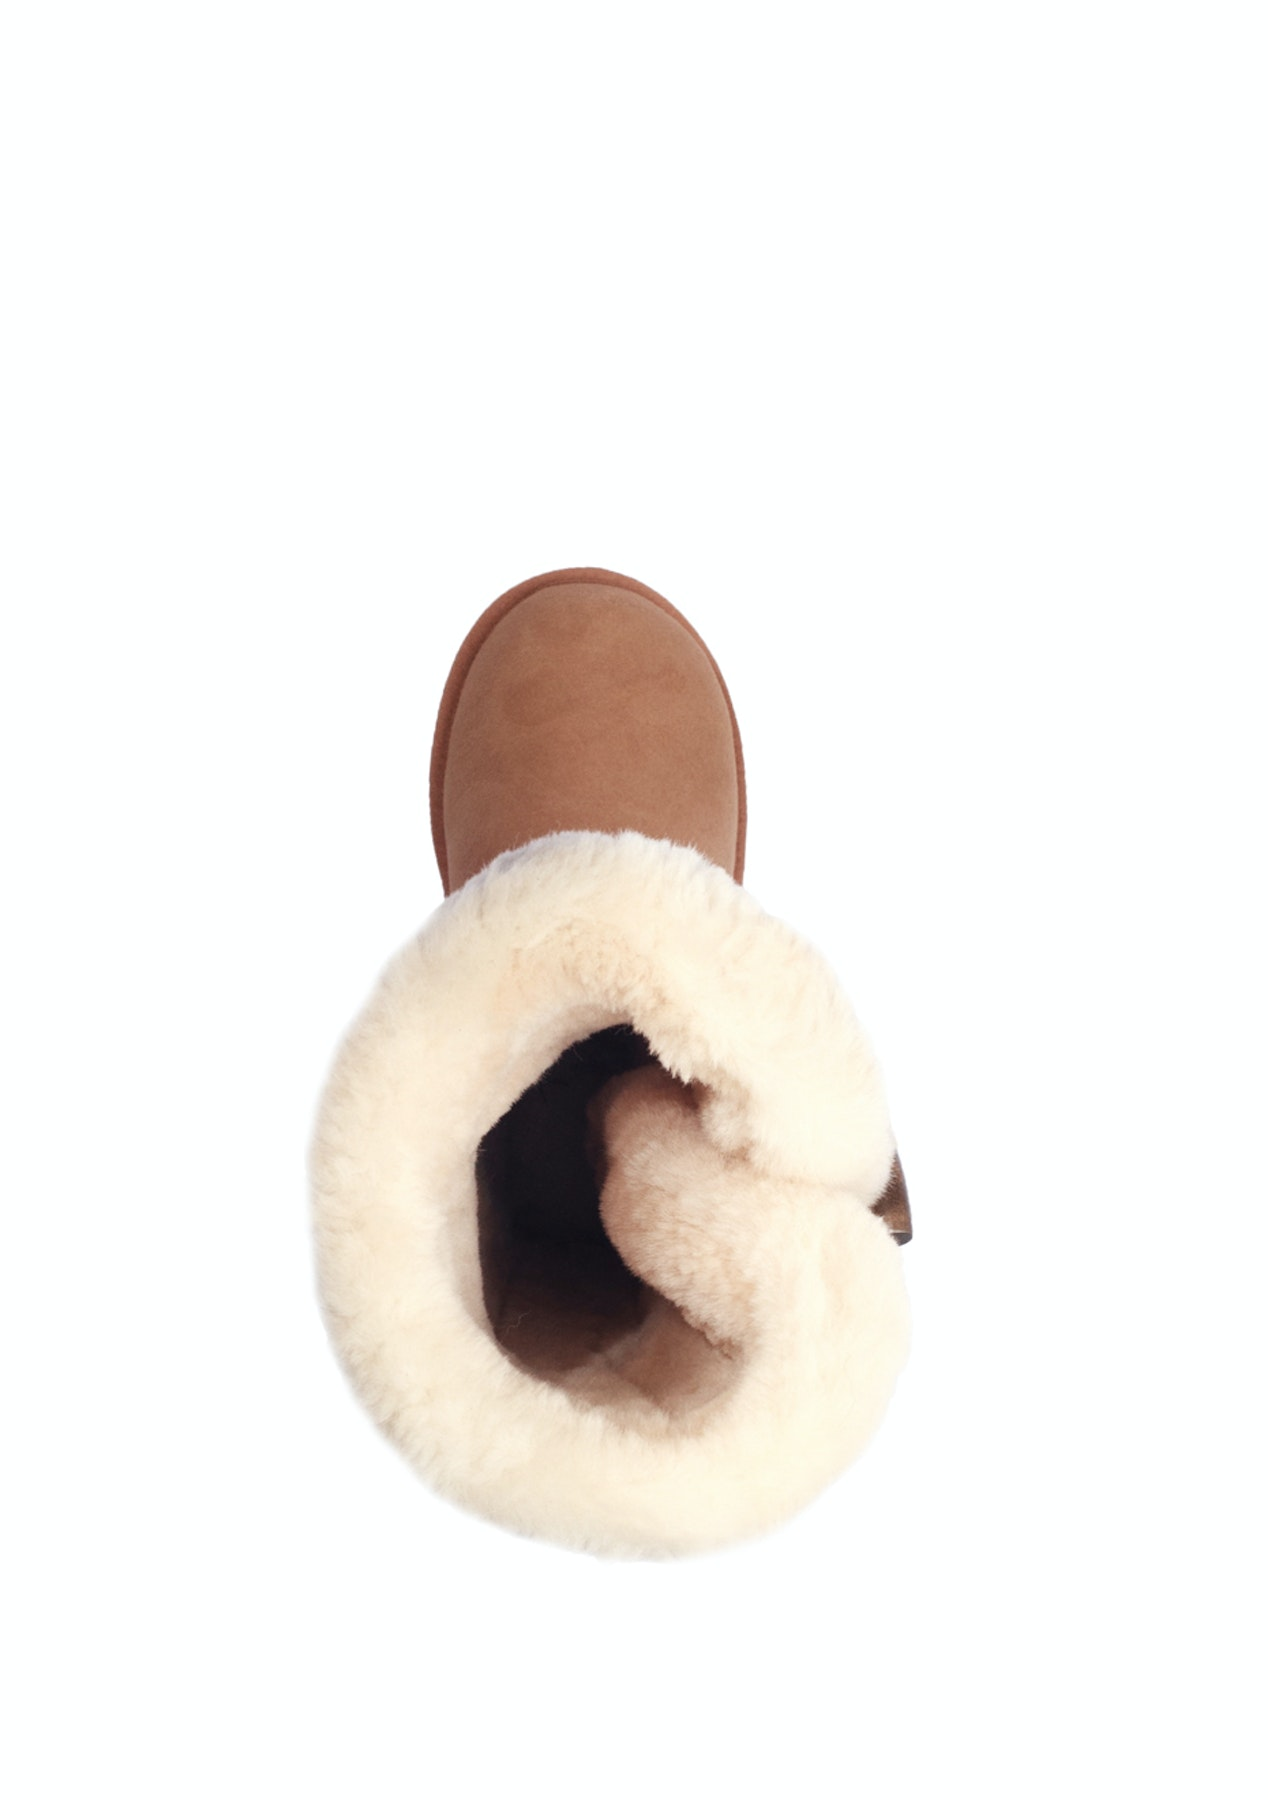 642028ee4d6 Ozwear - UGG Extra Long Diffle Boot - Chestnut